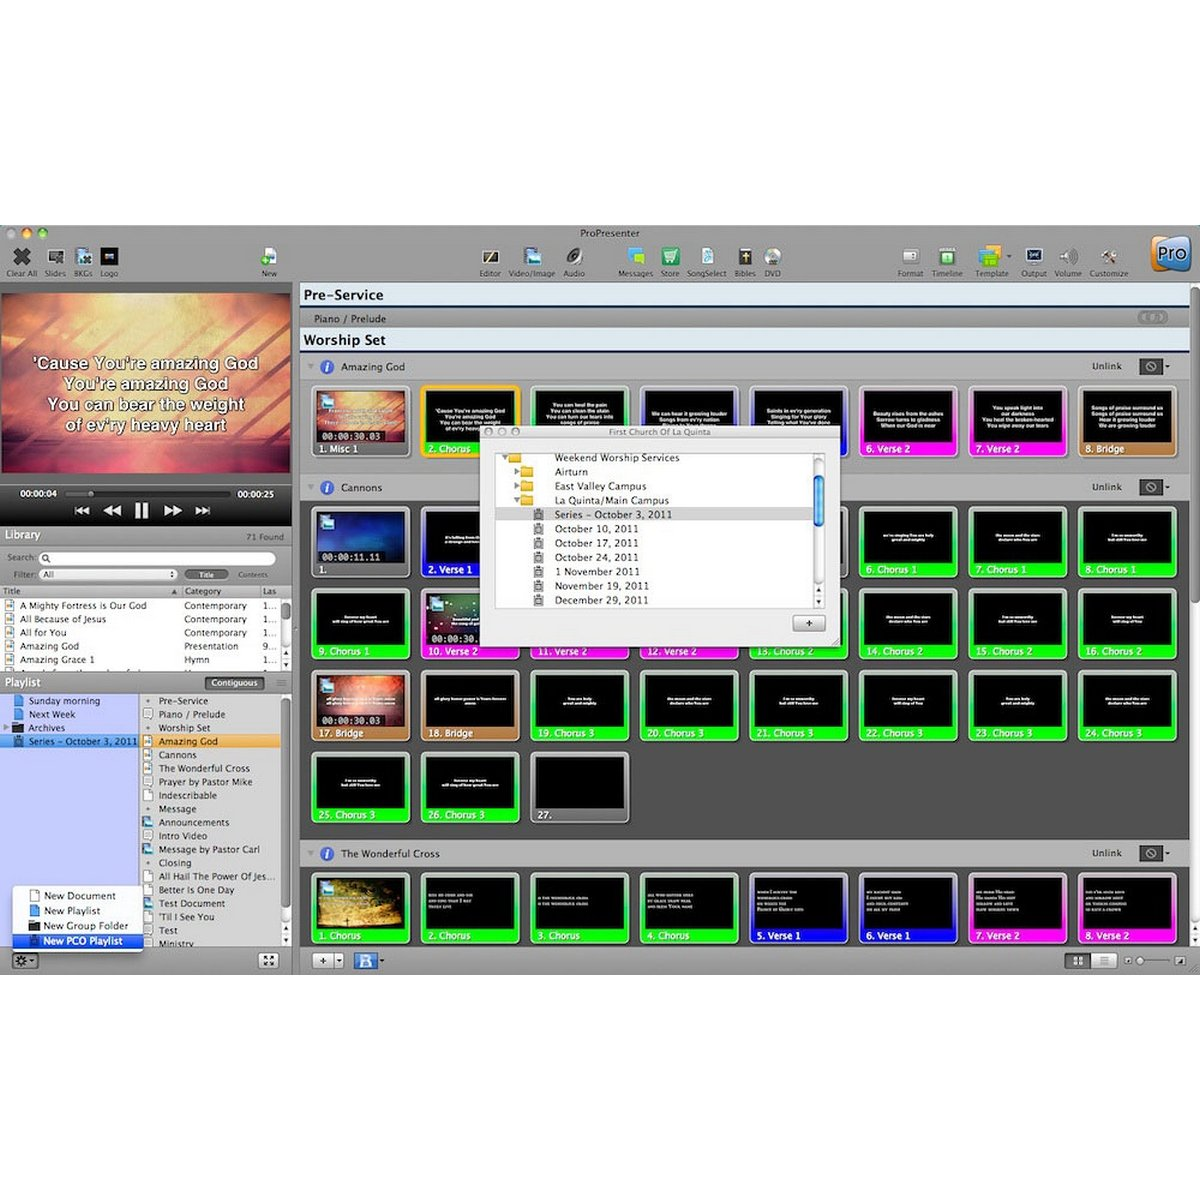 Renewed Vision ProPresenter 6 Campus License | Campus License both Mac and PC Electronic Delivery by Renewed Vision